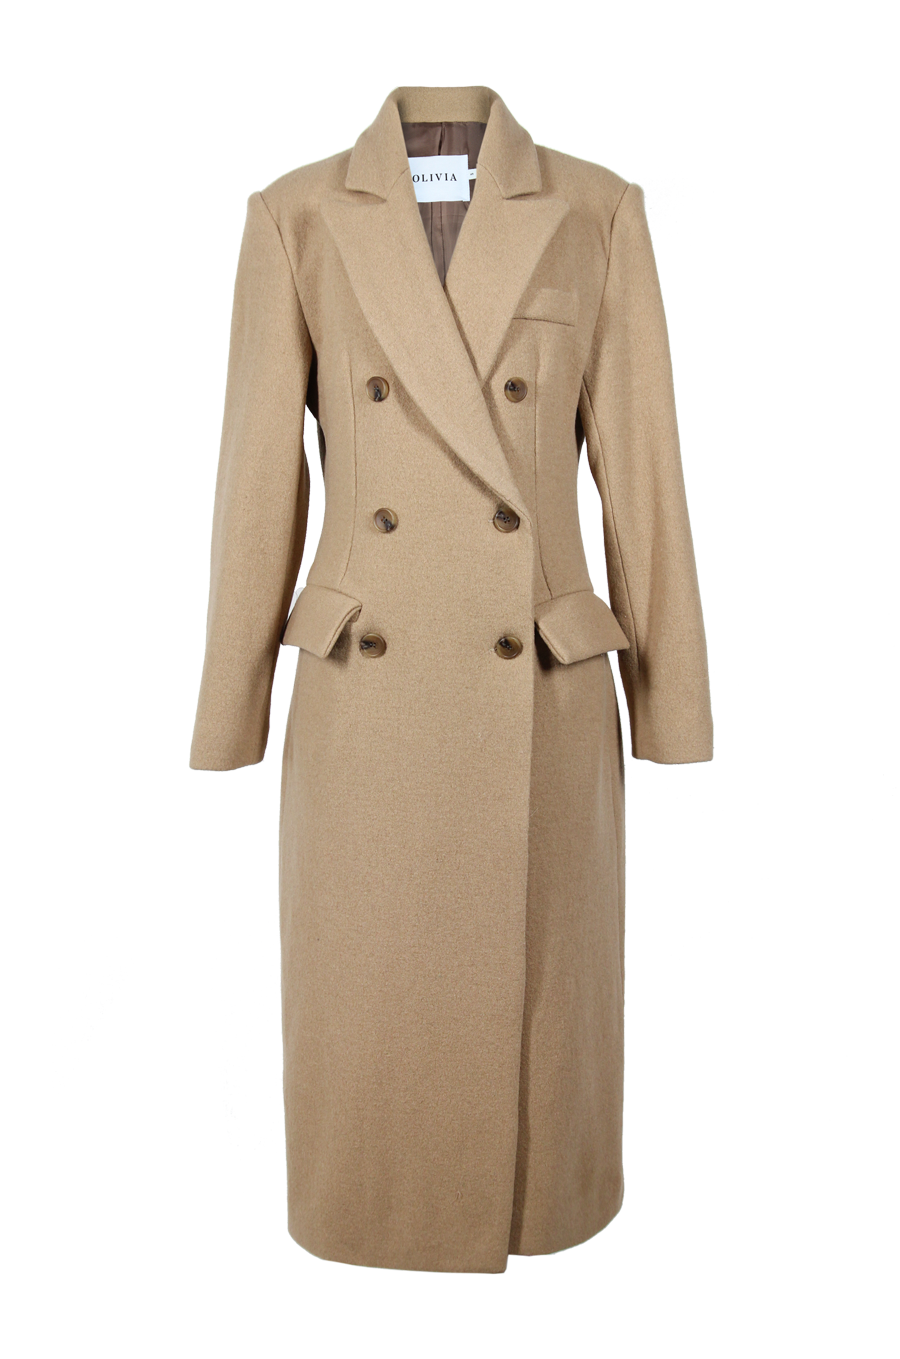 OLIVIA NZ Store online | Double Breasted Wool Coat / Beige